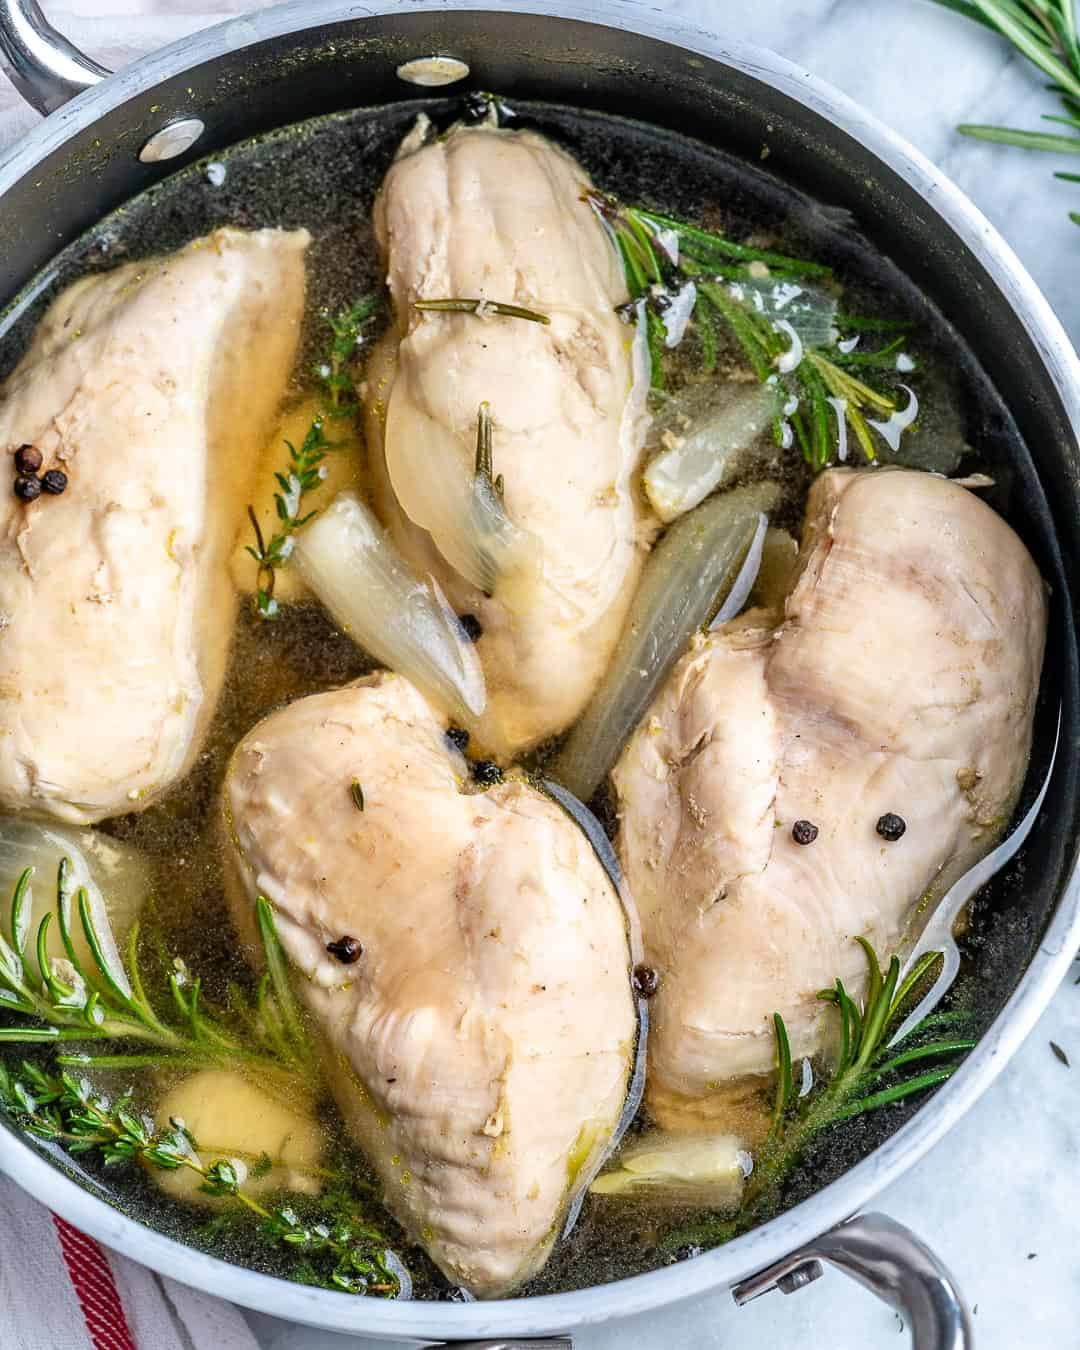 Poached chicken in pot with broth and herbs